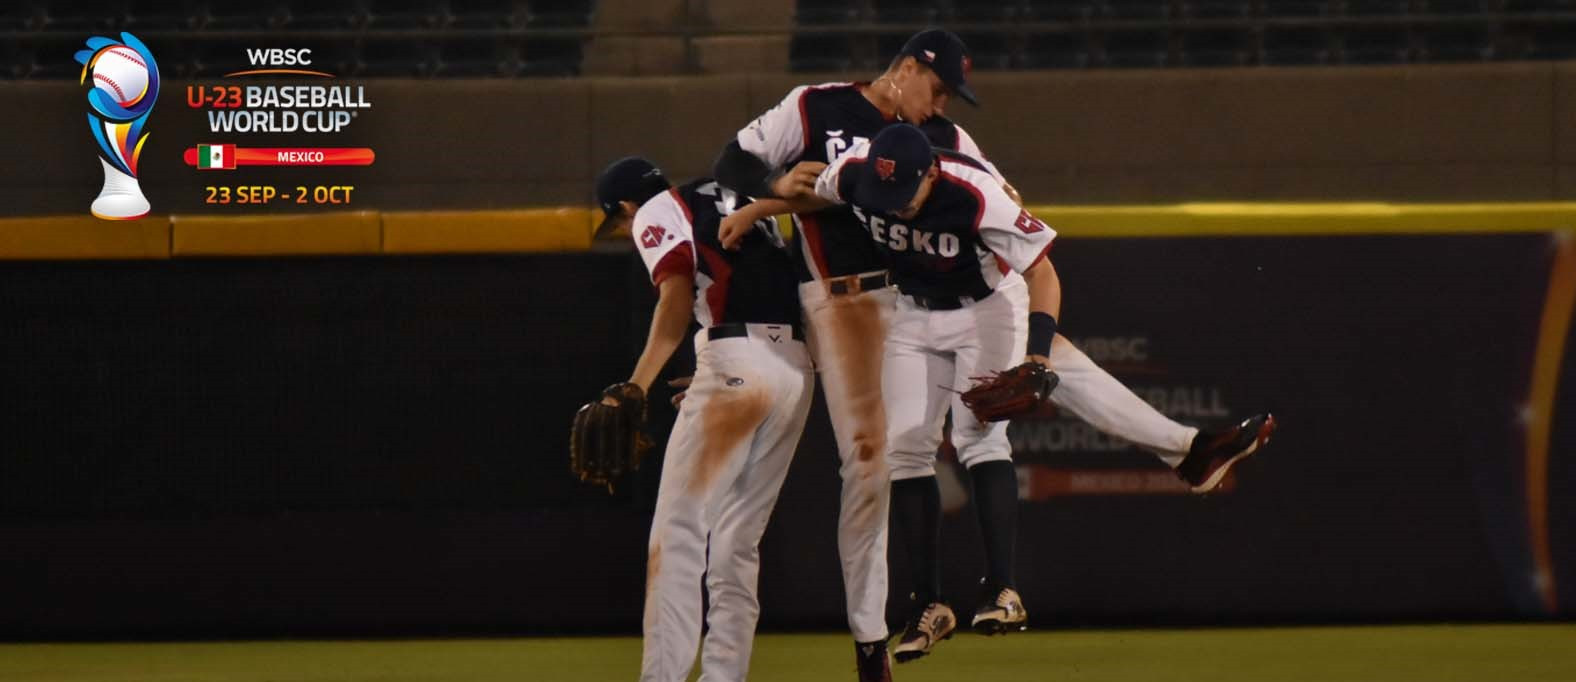 The Czech Republic began the tournament with a big win ©Twitter/WBSC